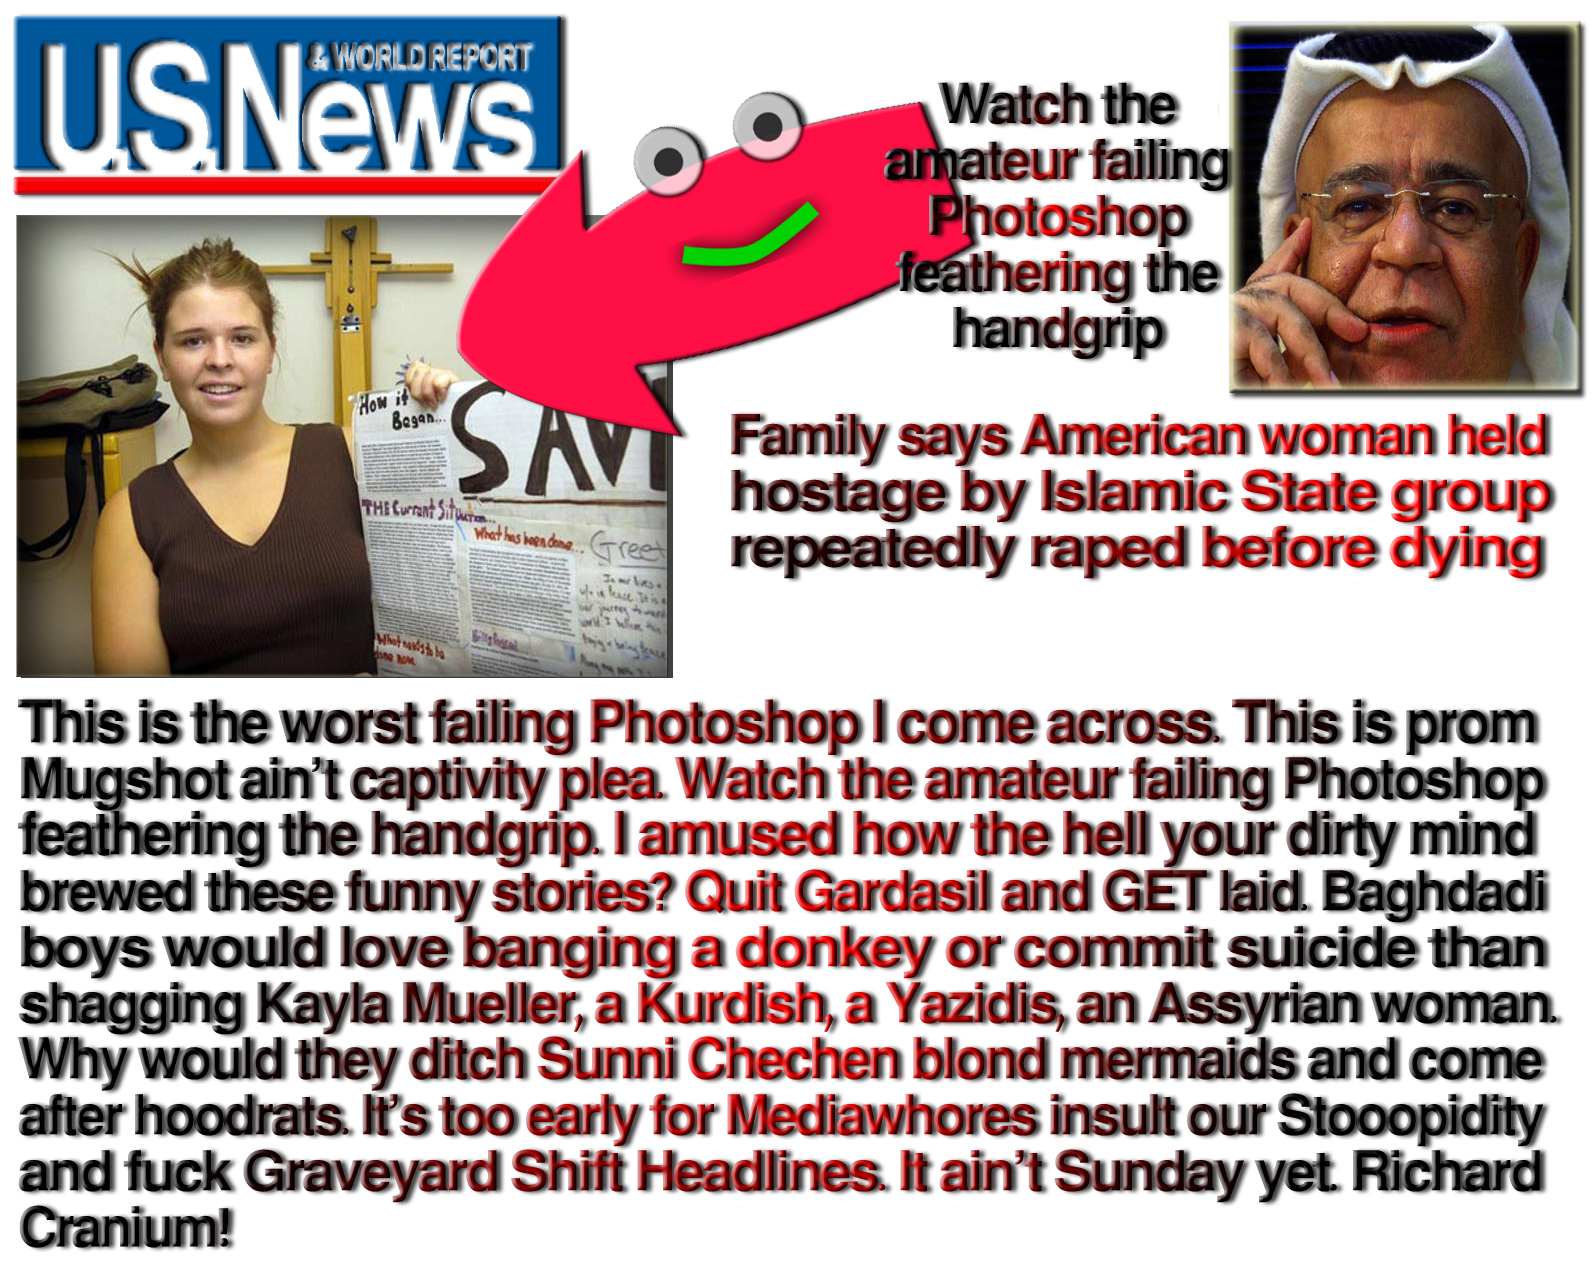 This is the worst failing Photoshop I come across. This is prom Mugshot ain't captivity plea. Watch the amateur failing Photoshop feathering the handgrip. I amused how the hell your dirty mind brewed these funny stories? Quit Gardasil and GET laid. Baghdadi boys would love banging a donkey or commit suicide than shagging Kayla Mueller, a Kurdish, a Yazidis, an Assyrian woman. Why would they ditch Sunni Chechen blond mermaids and come after hoodrats. It's too early for Mediawhores insult our Stooopidity and fuck Graveyard Shift Headlines. It ain't Sunday yet. Richard Cranium!